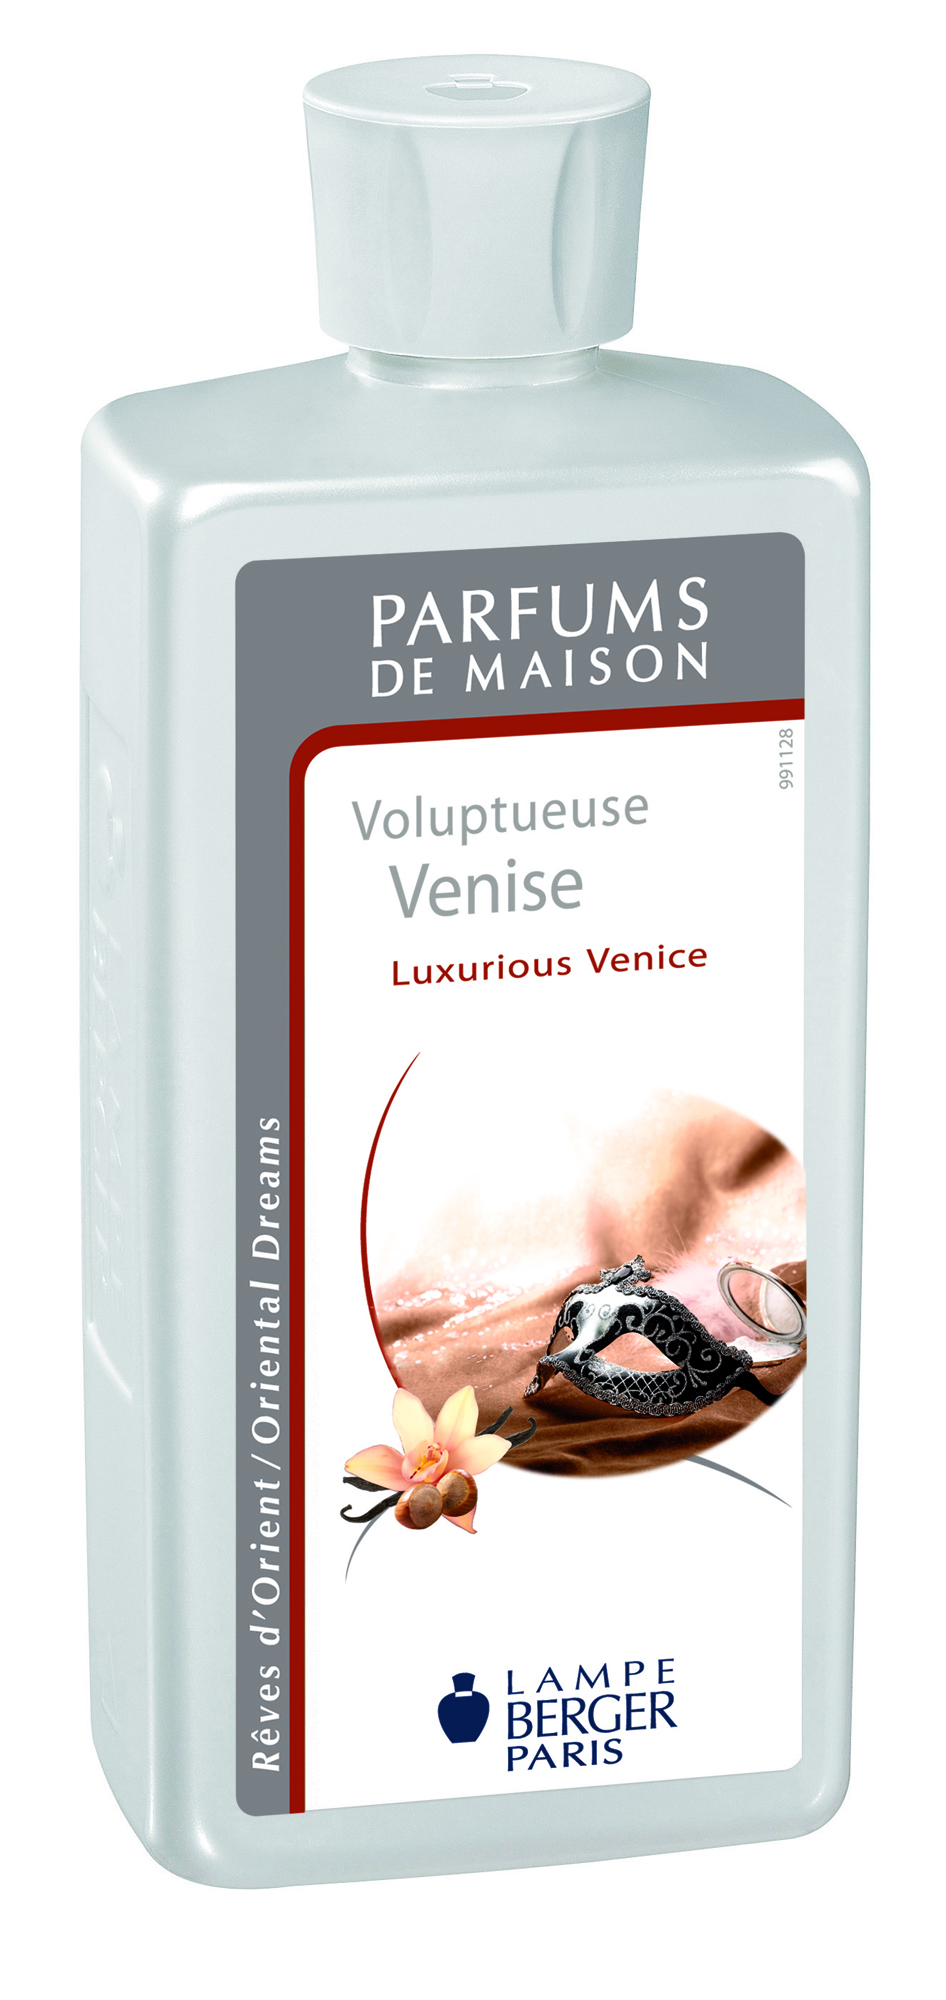 Photo de Parfum maison Lampe Berger Voluptueuse Venise